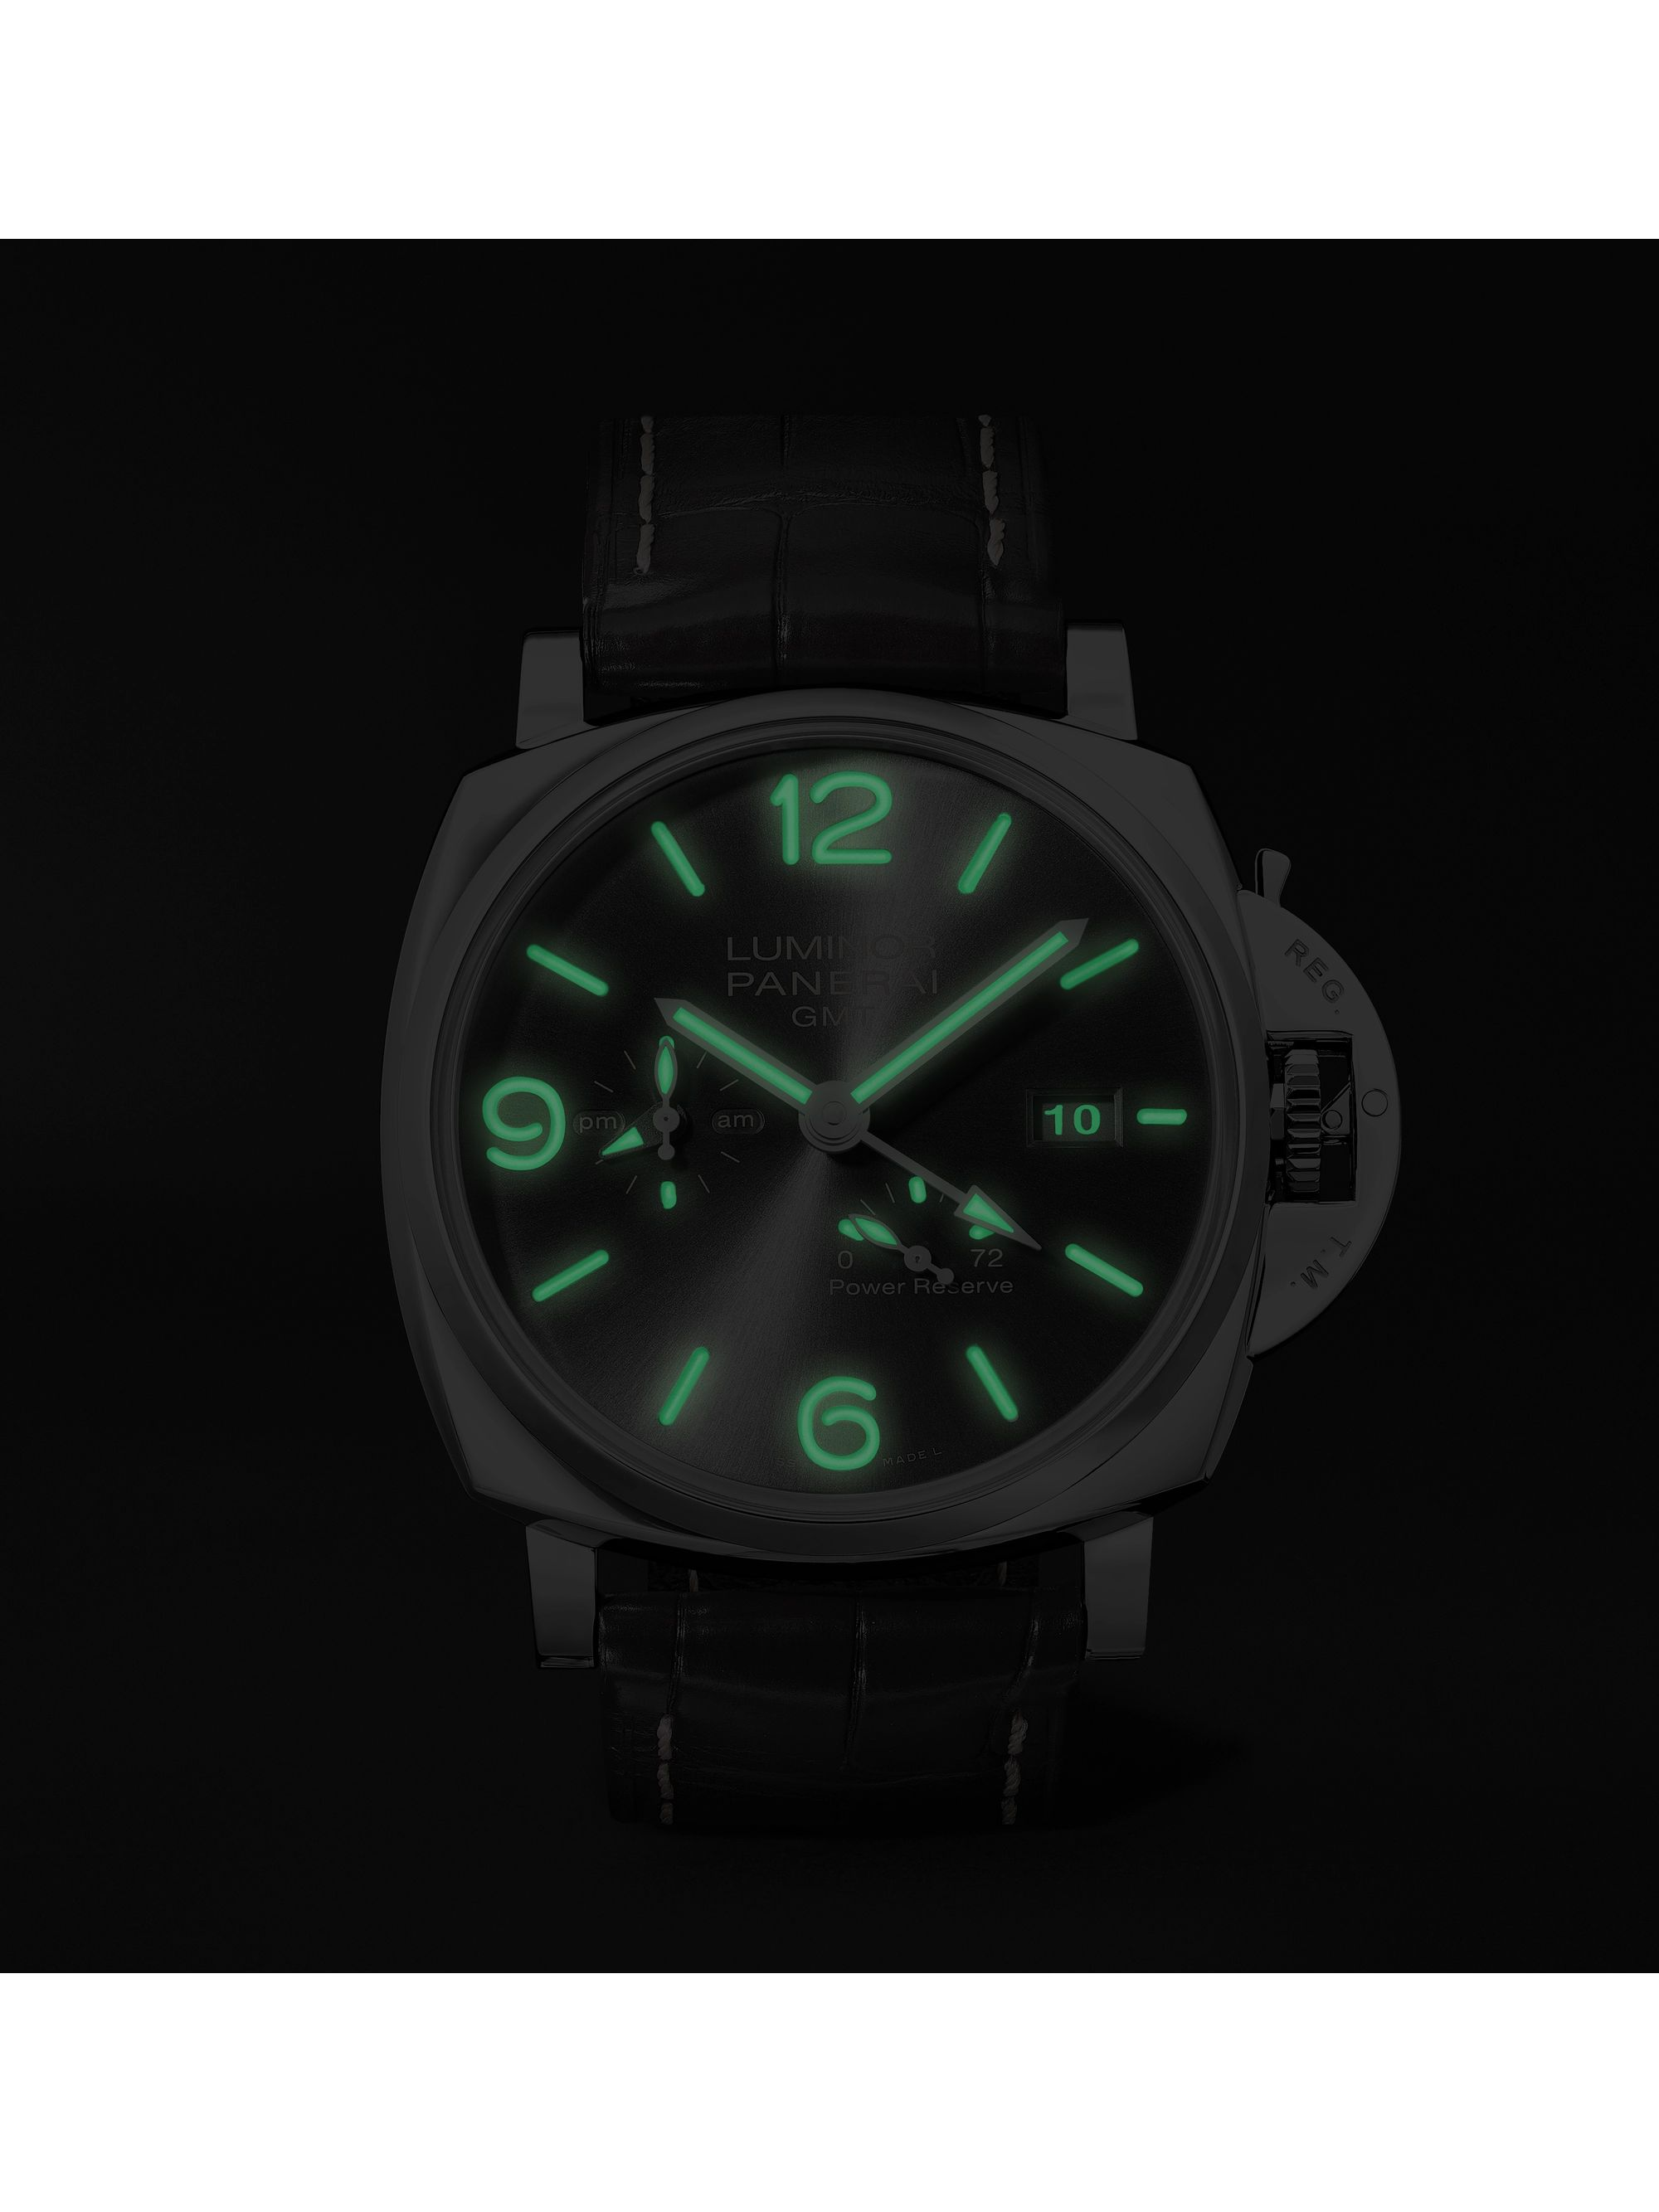 Panerai Luminor Due GMT Automatic 45mm Stainless Steel and Alligator Watch, Ref. No. PAM00944